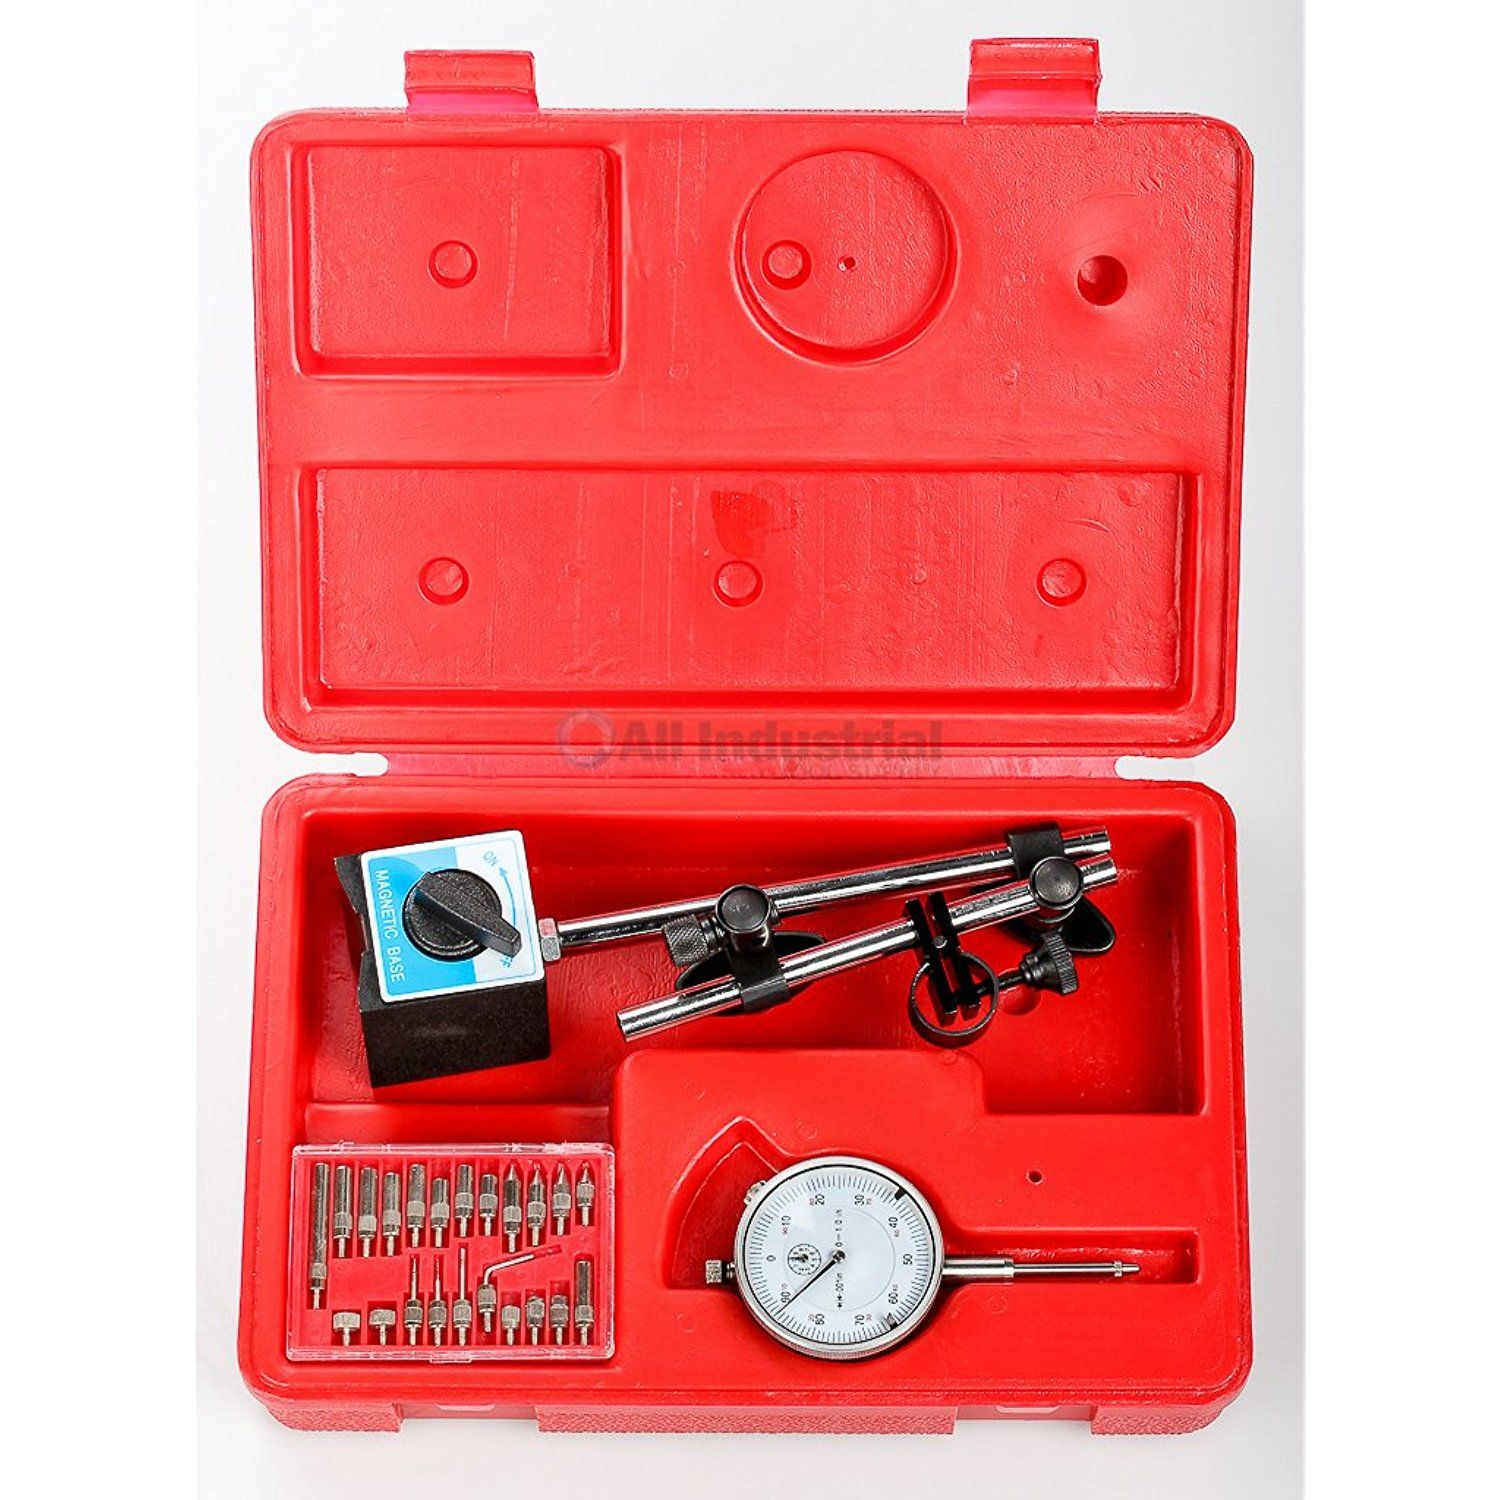 starrett 196 dial indicator parts diagram all industrial tool supply tr72020 dial indicator  magnetic base  dial indicator  magnetic base